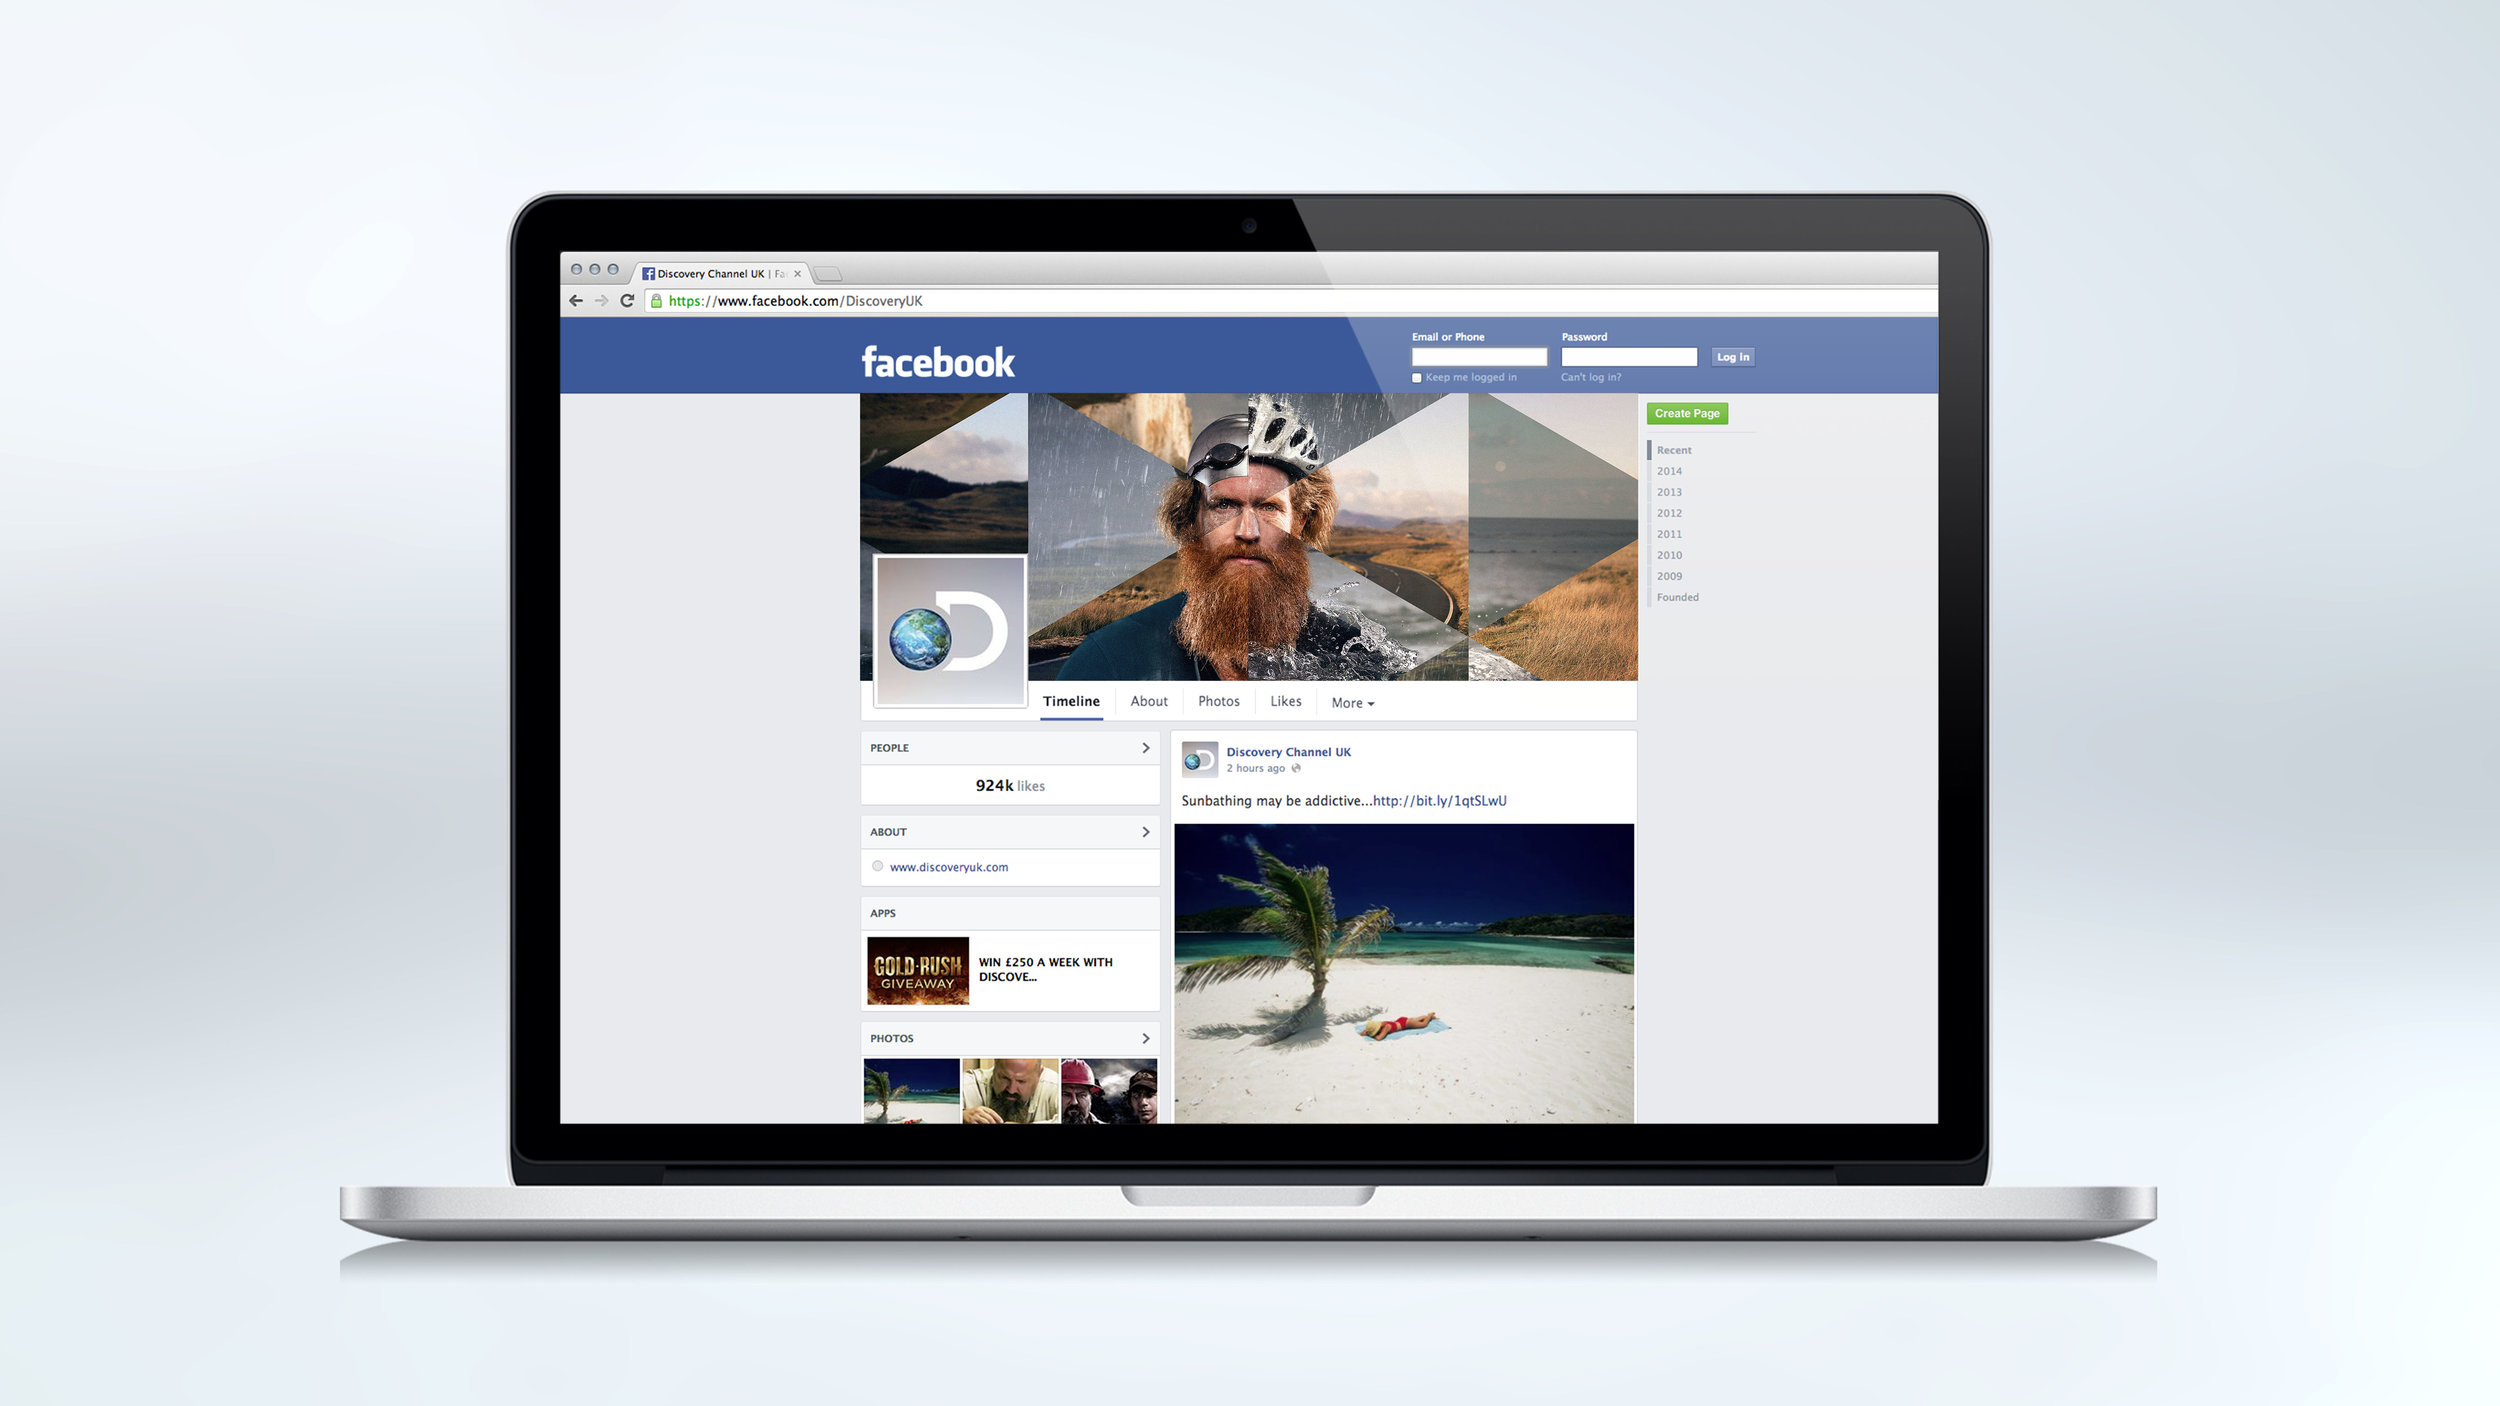 sean-conway-on-the-edge-discovery-facebook-cover-mock-01-desktop.jpg